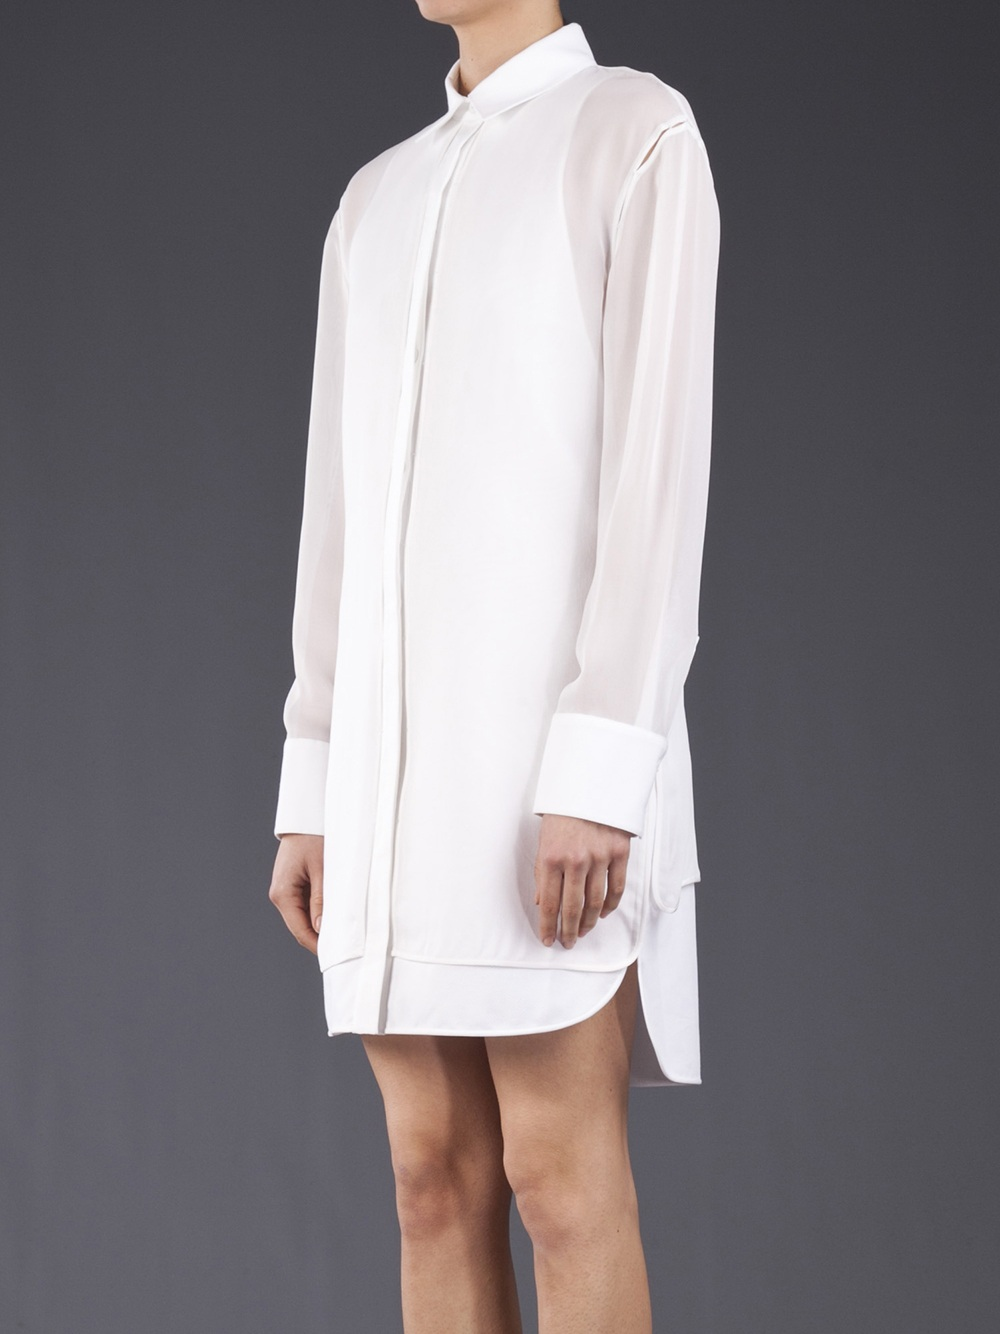 Womens Shirt Dress Dress Foto And Picture